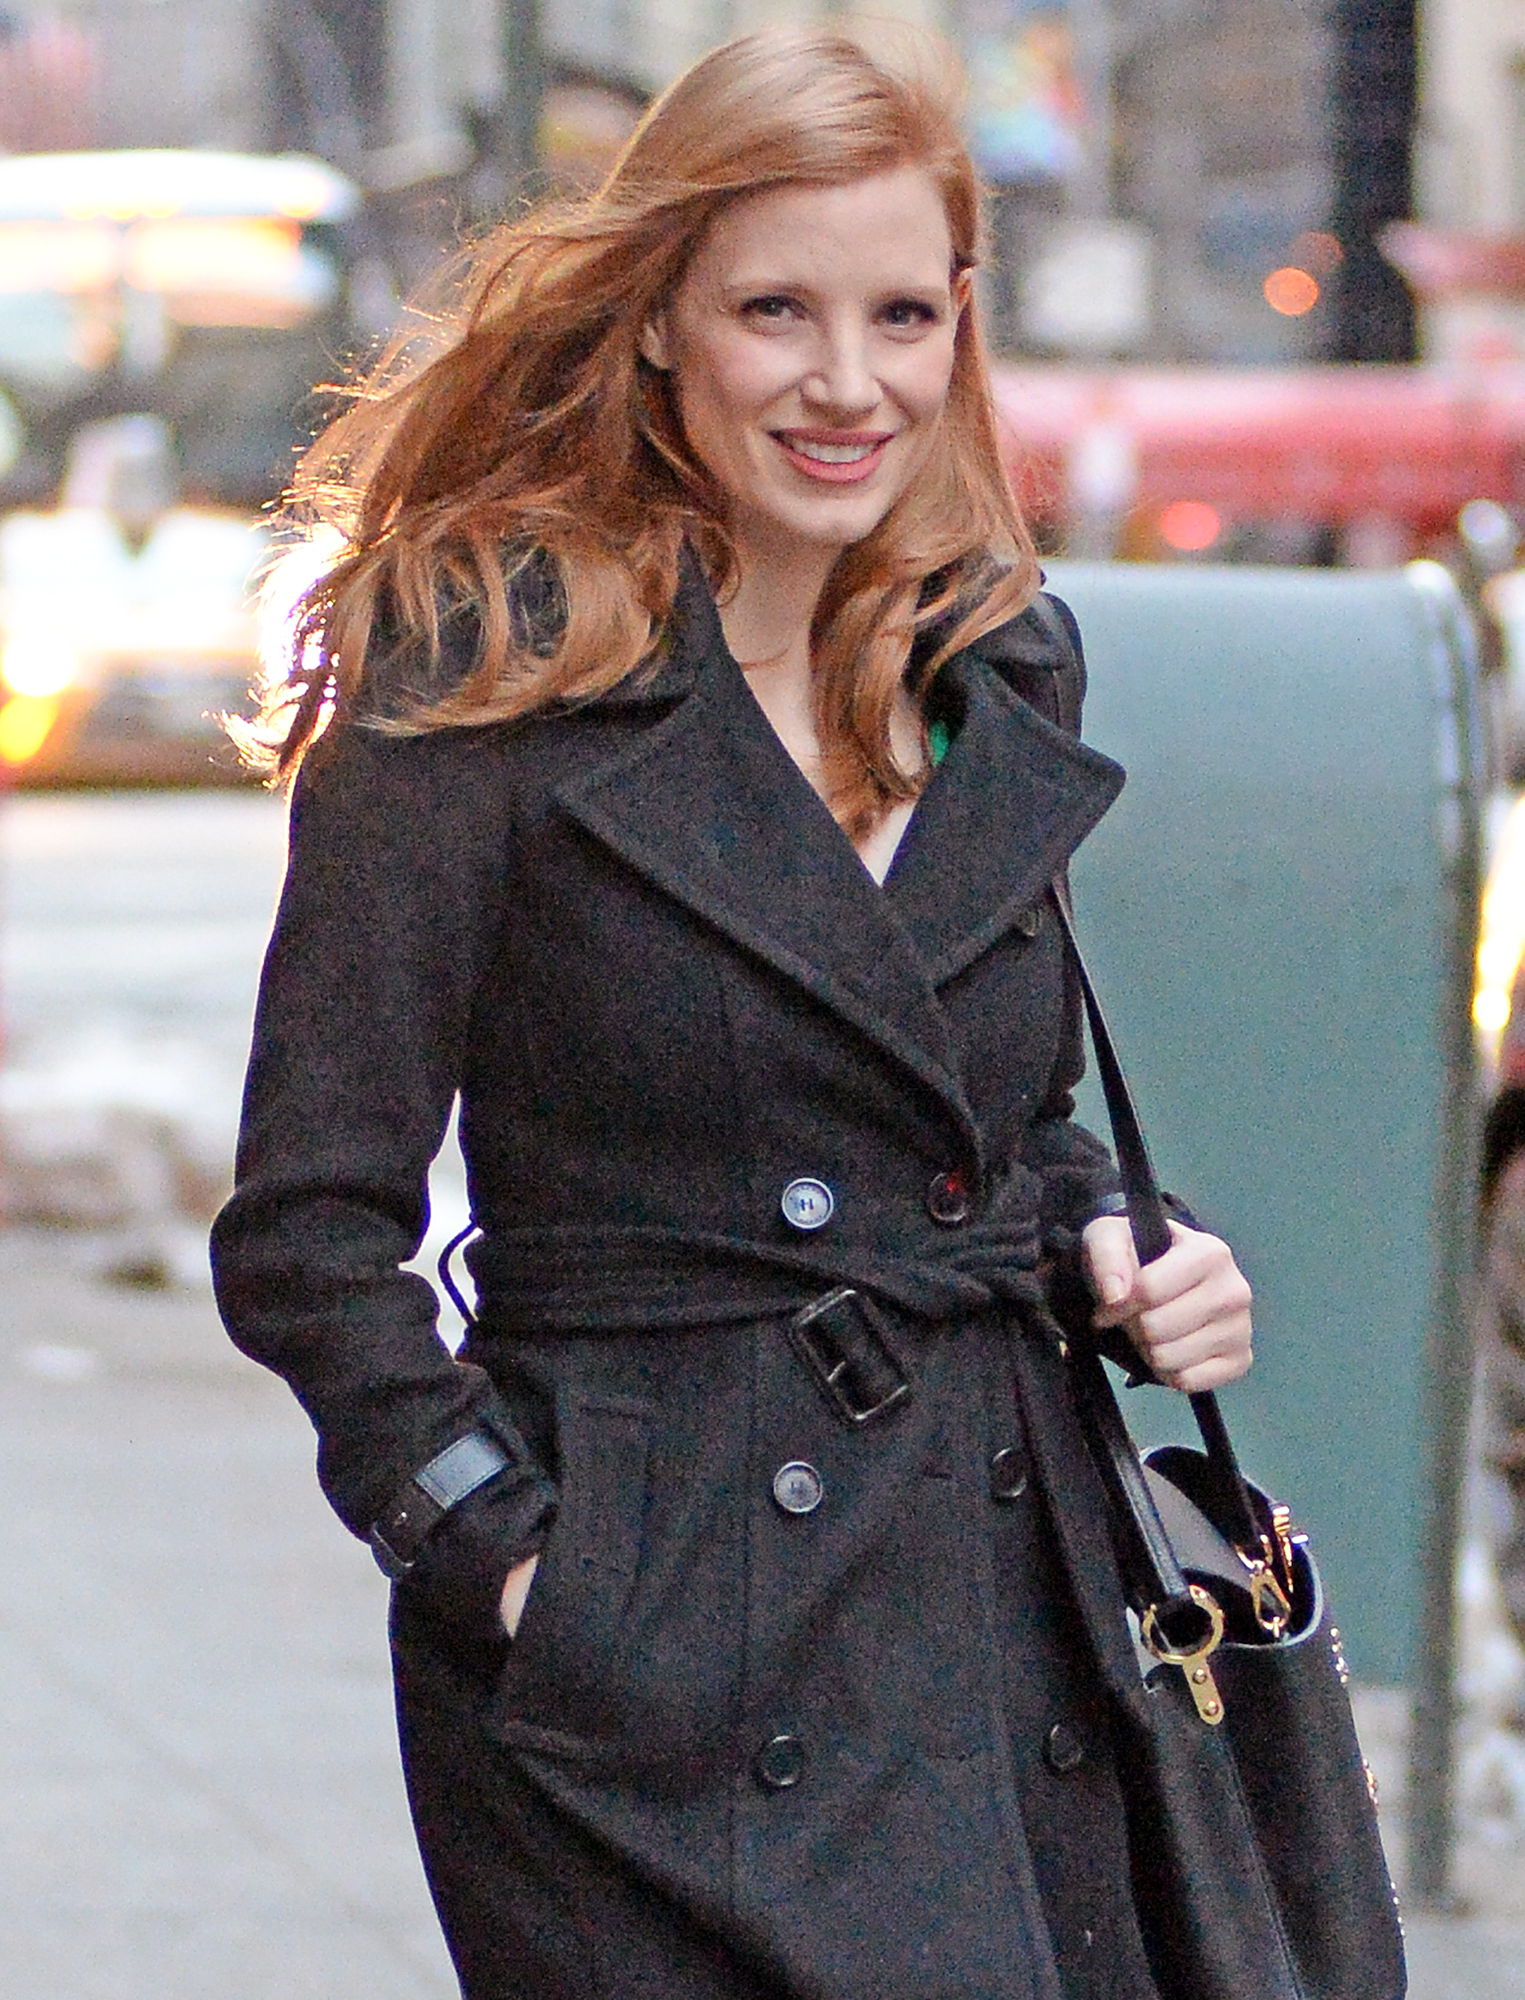 Jessica Chastain is all smiles while leaving her apartment in New York City